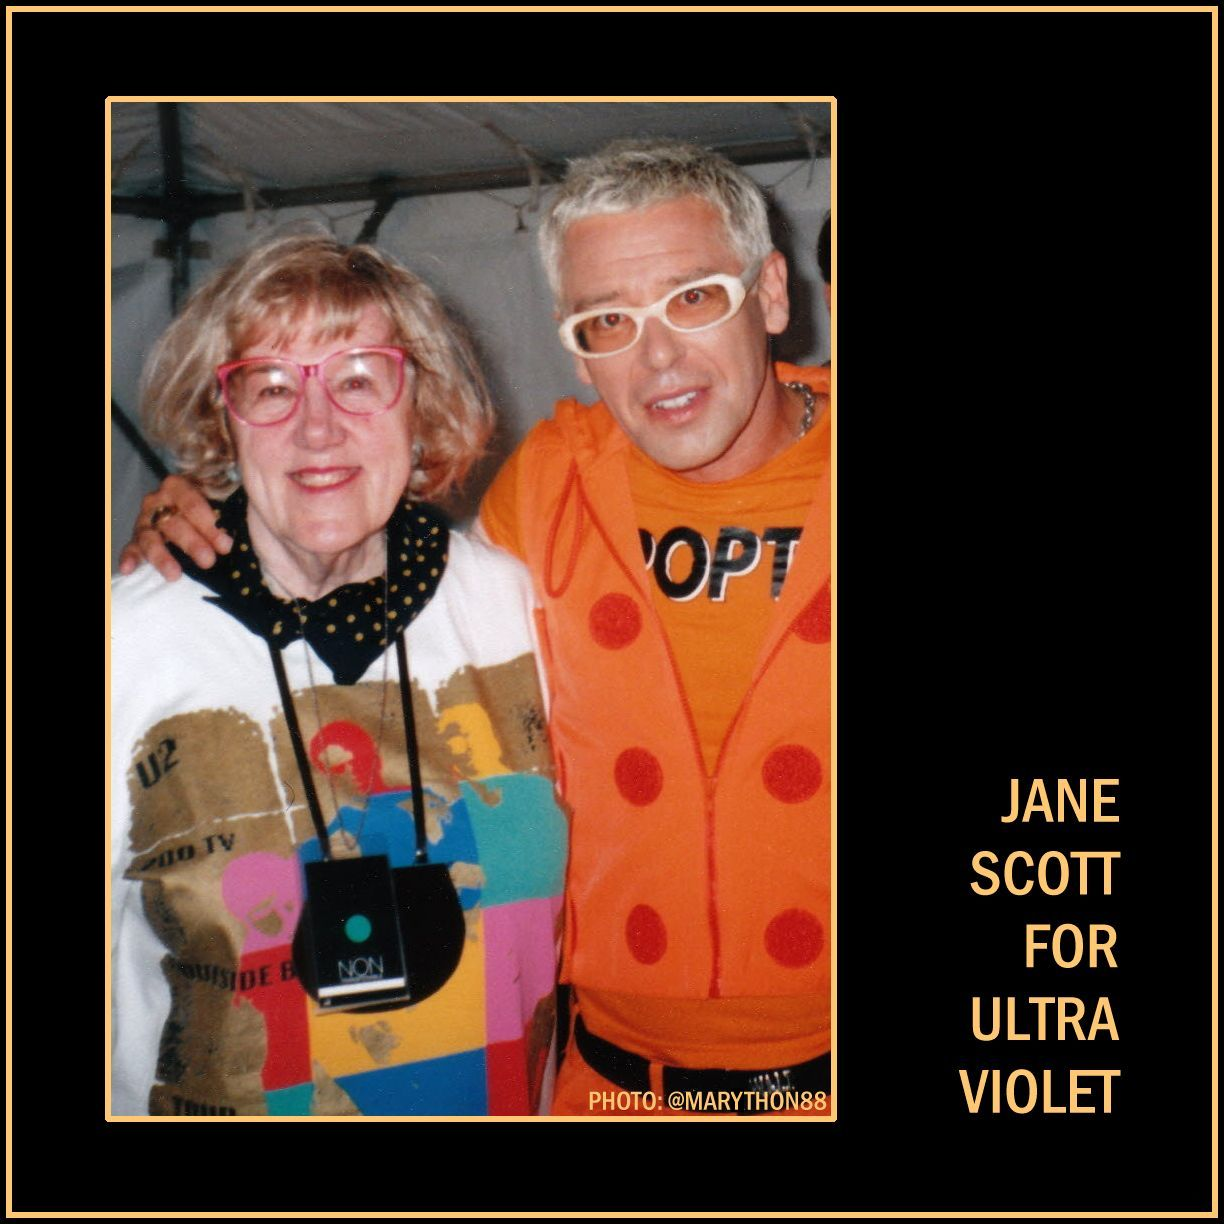 Jane Scott with Adam Clayton